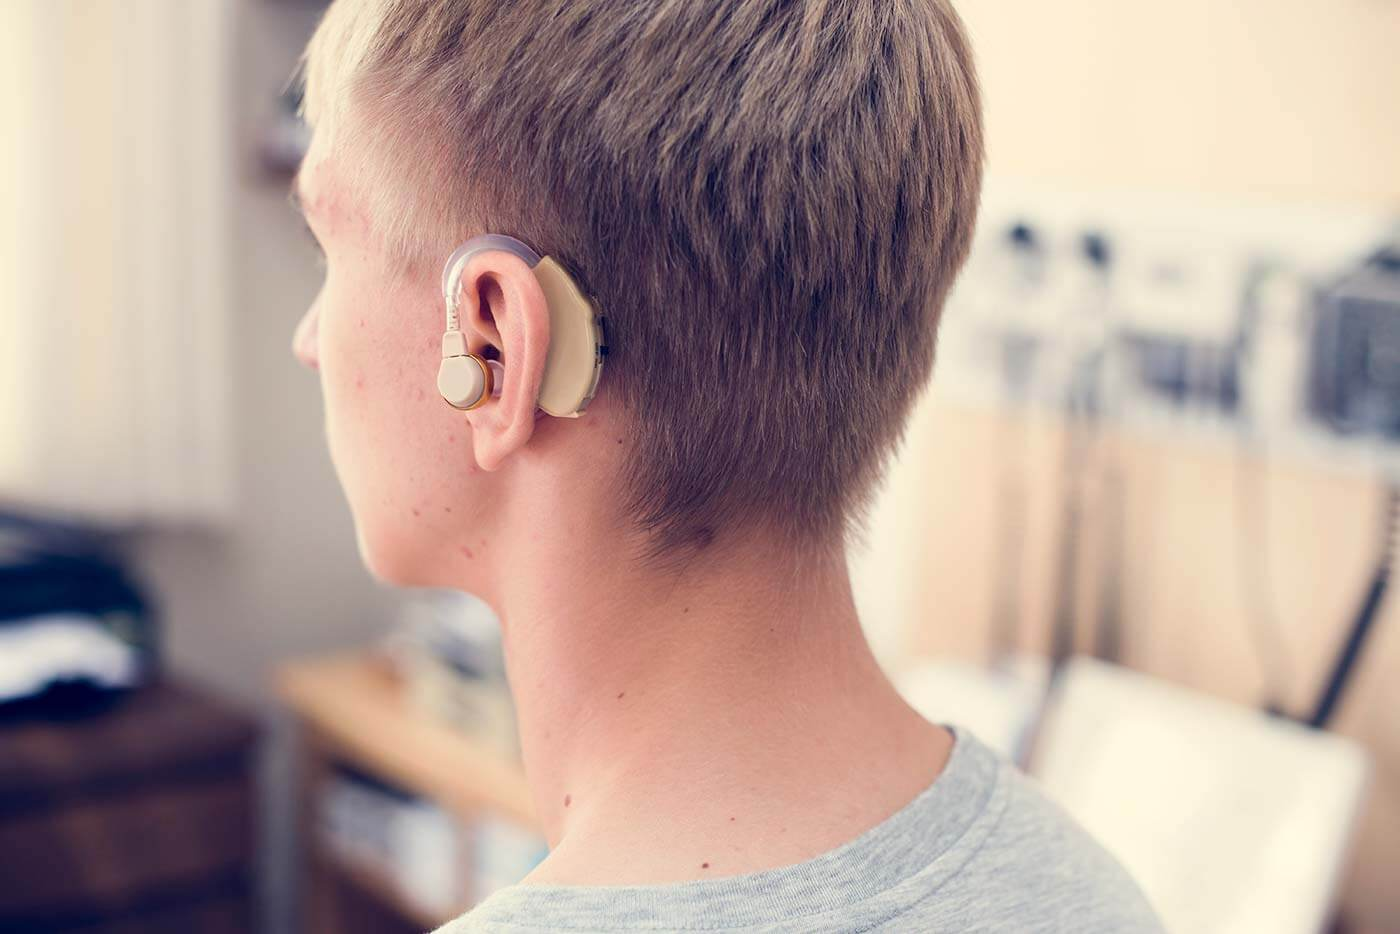 Best Hearing Aids for Tinnitus 2019 - Quiet Ears